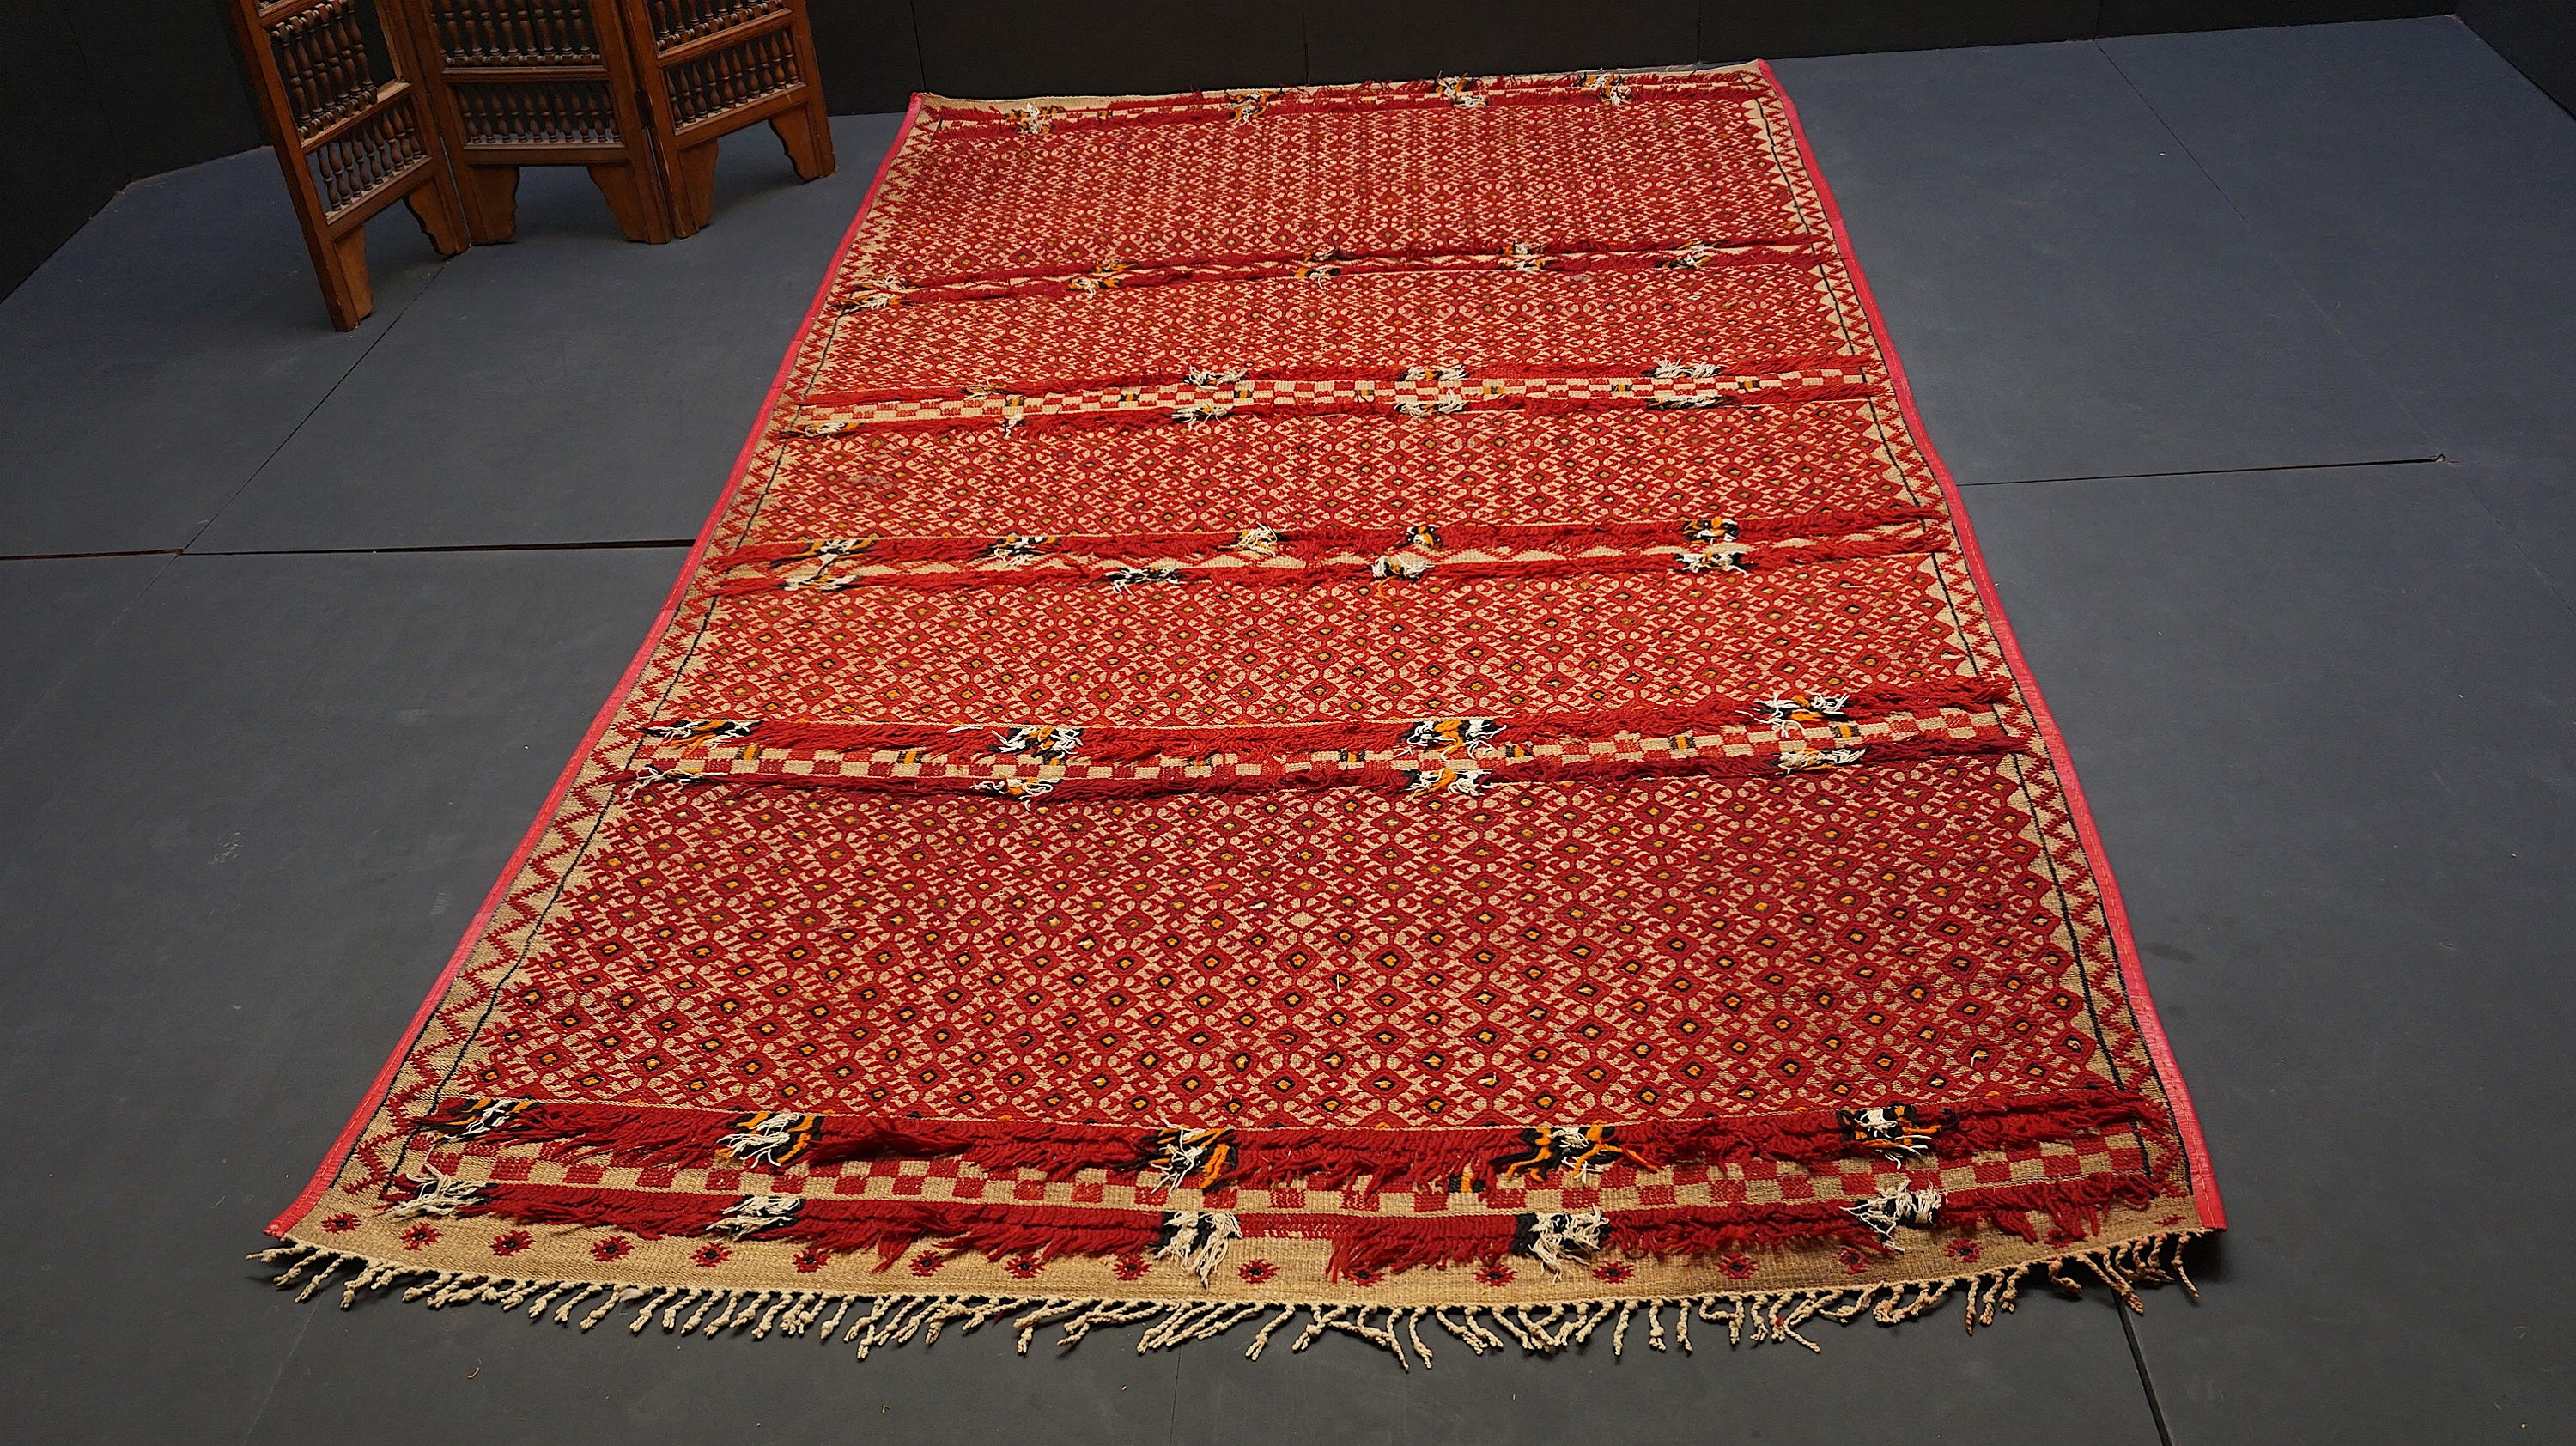 resistant mats mat p rug straw rugs rectangle cove tropical stain area paradise